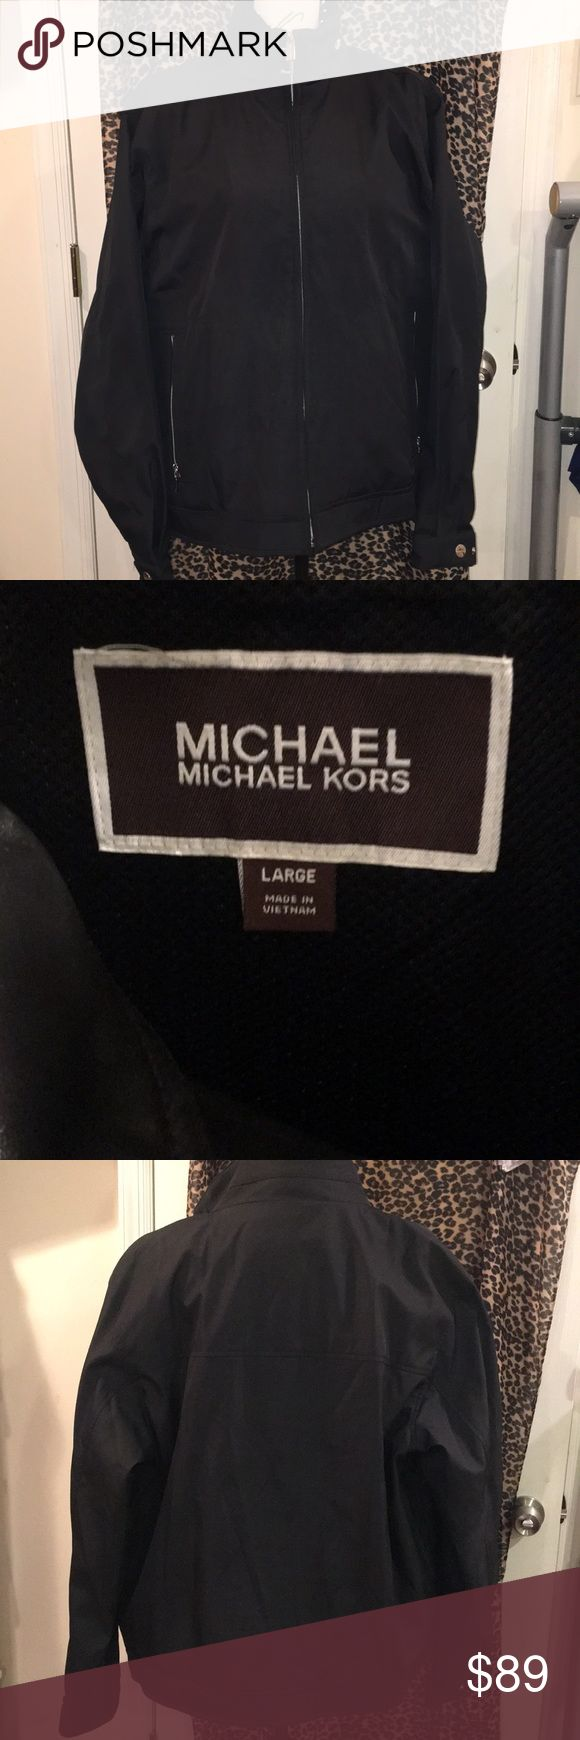 NWOT Michael Kors Mens jacket Like new /never worn. Just purchased & Tags were just taken off but didn't fit. Beautiful jacket. Size large. Price may be slightly neg for serious buyer through offer option. KORS Michael Kors Jackets & Coats Windbreakers